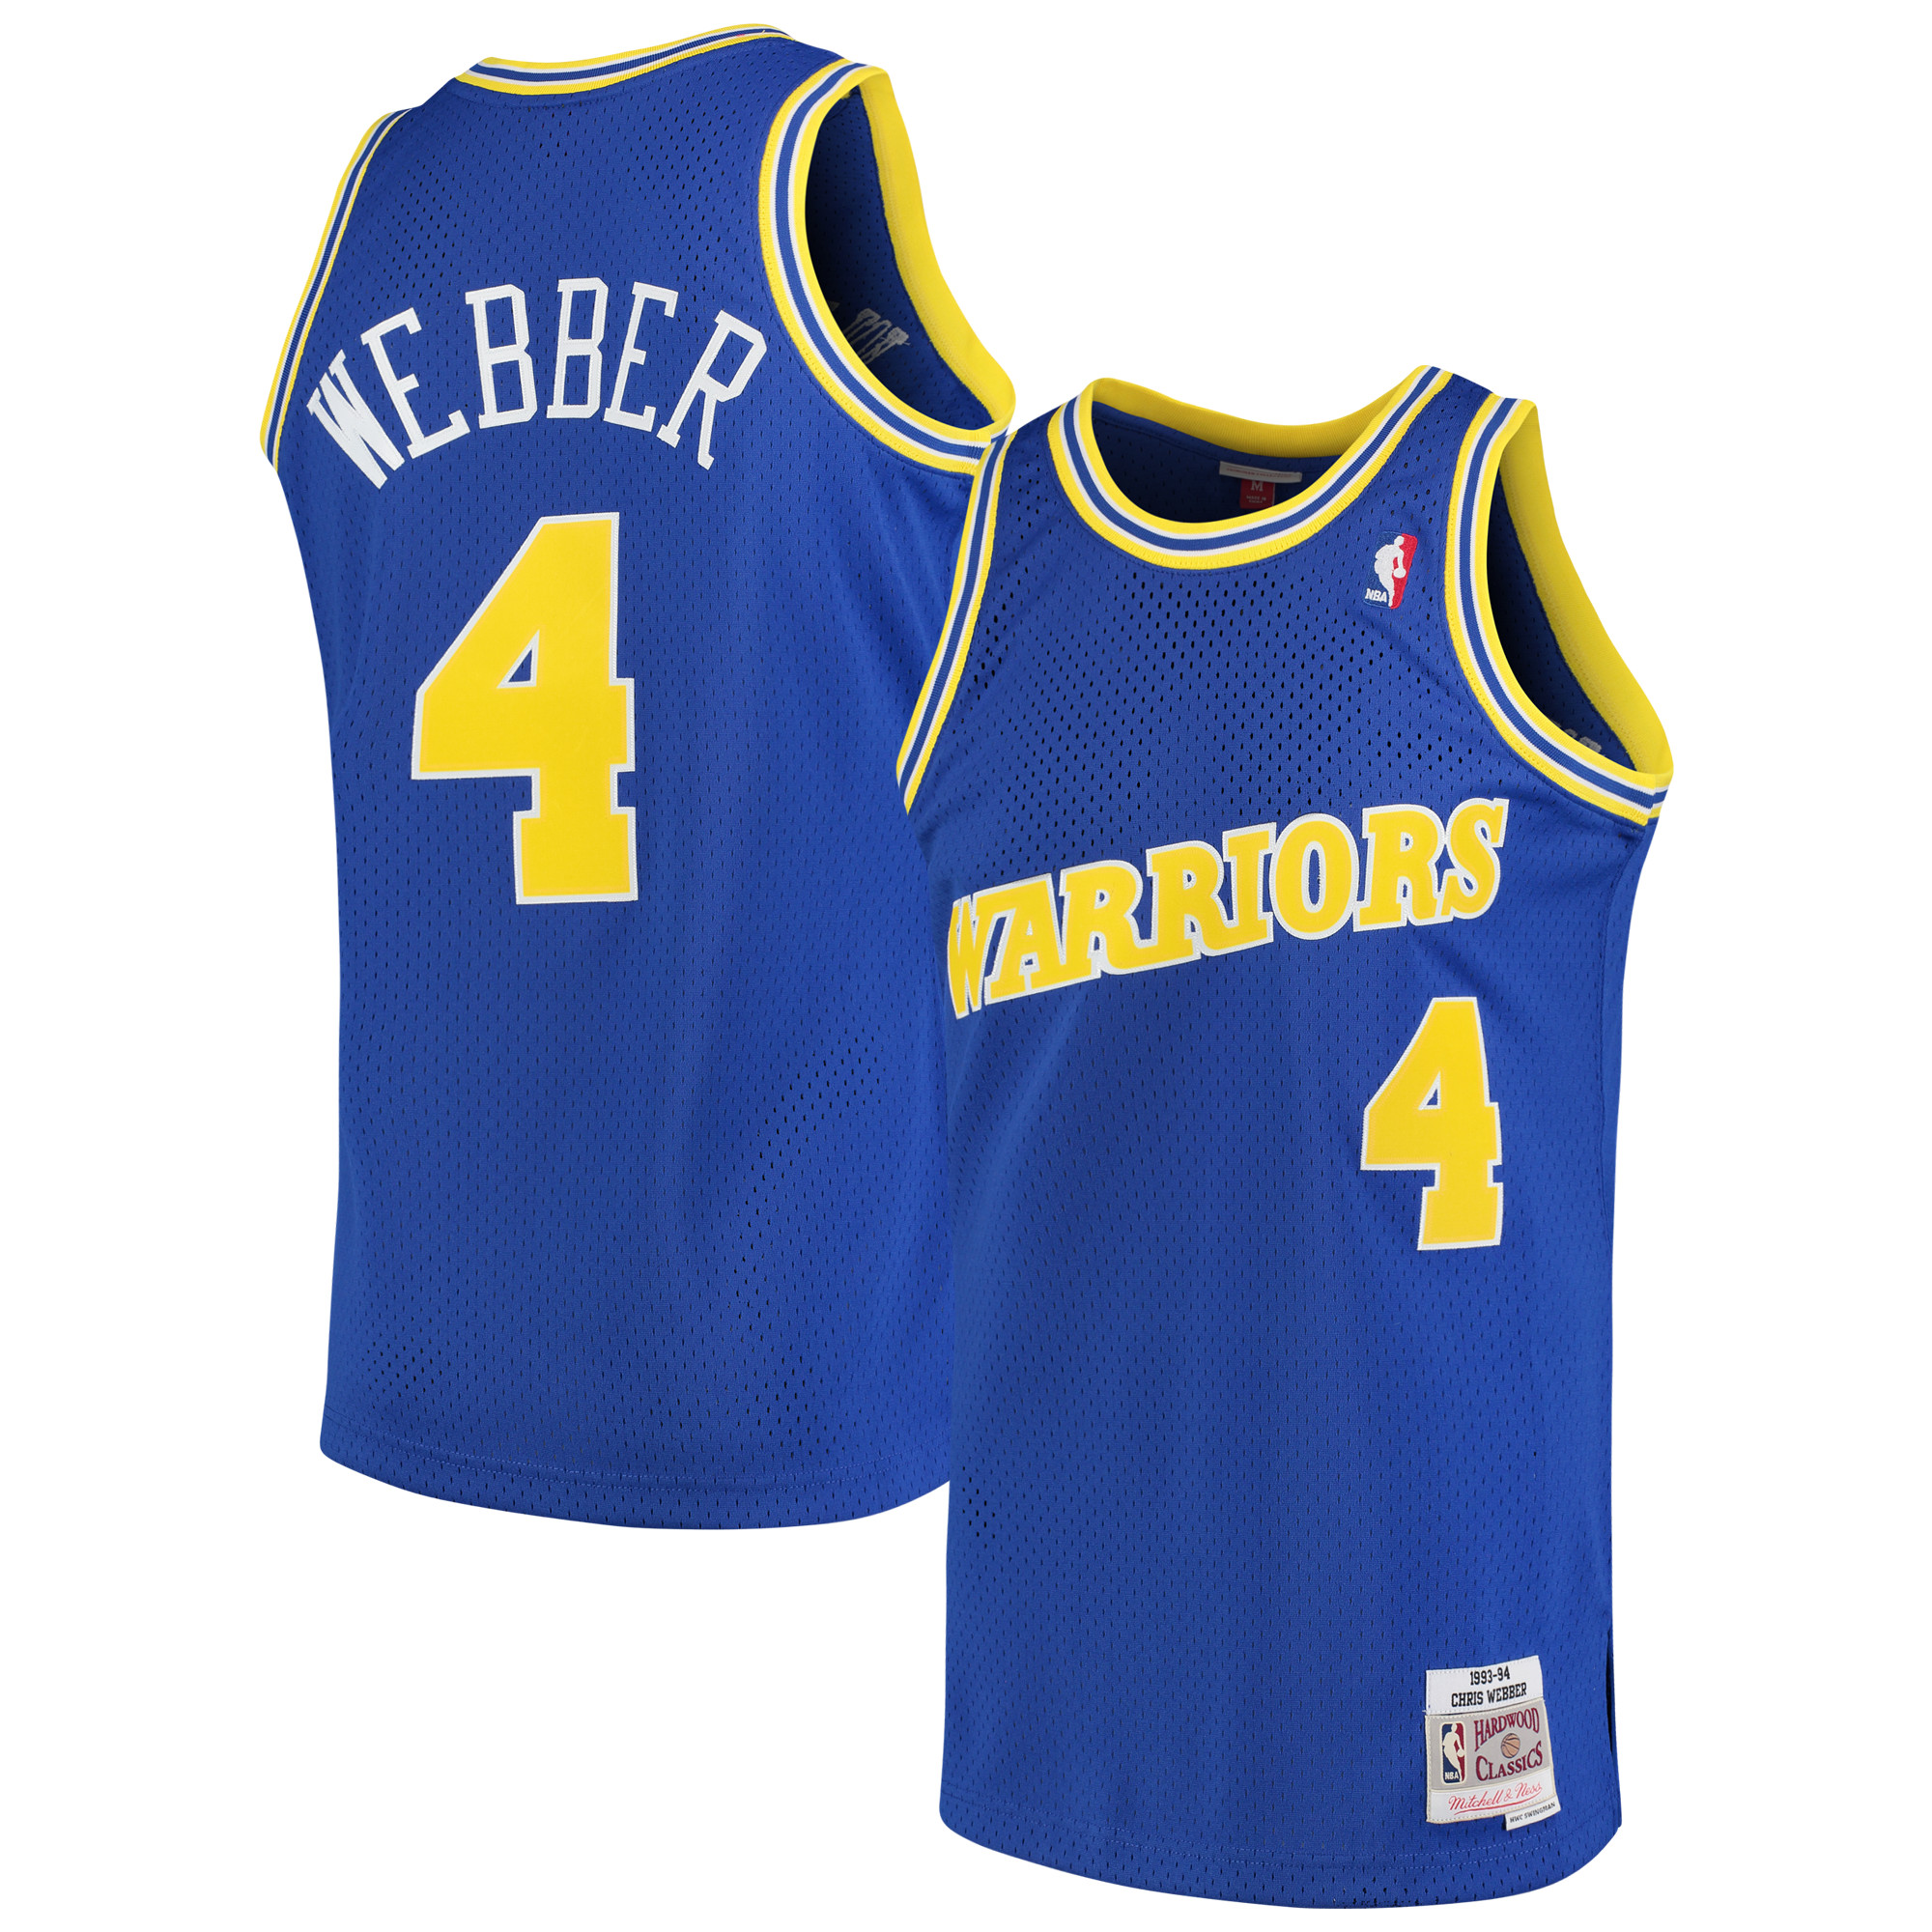 Chris Webber Golden State Warriors Mitchell & Ness 1993-94 Hardwood Classics Swingman Jersey - Royal